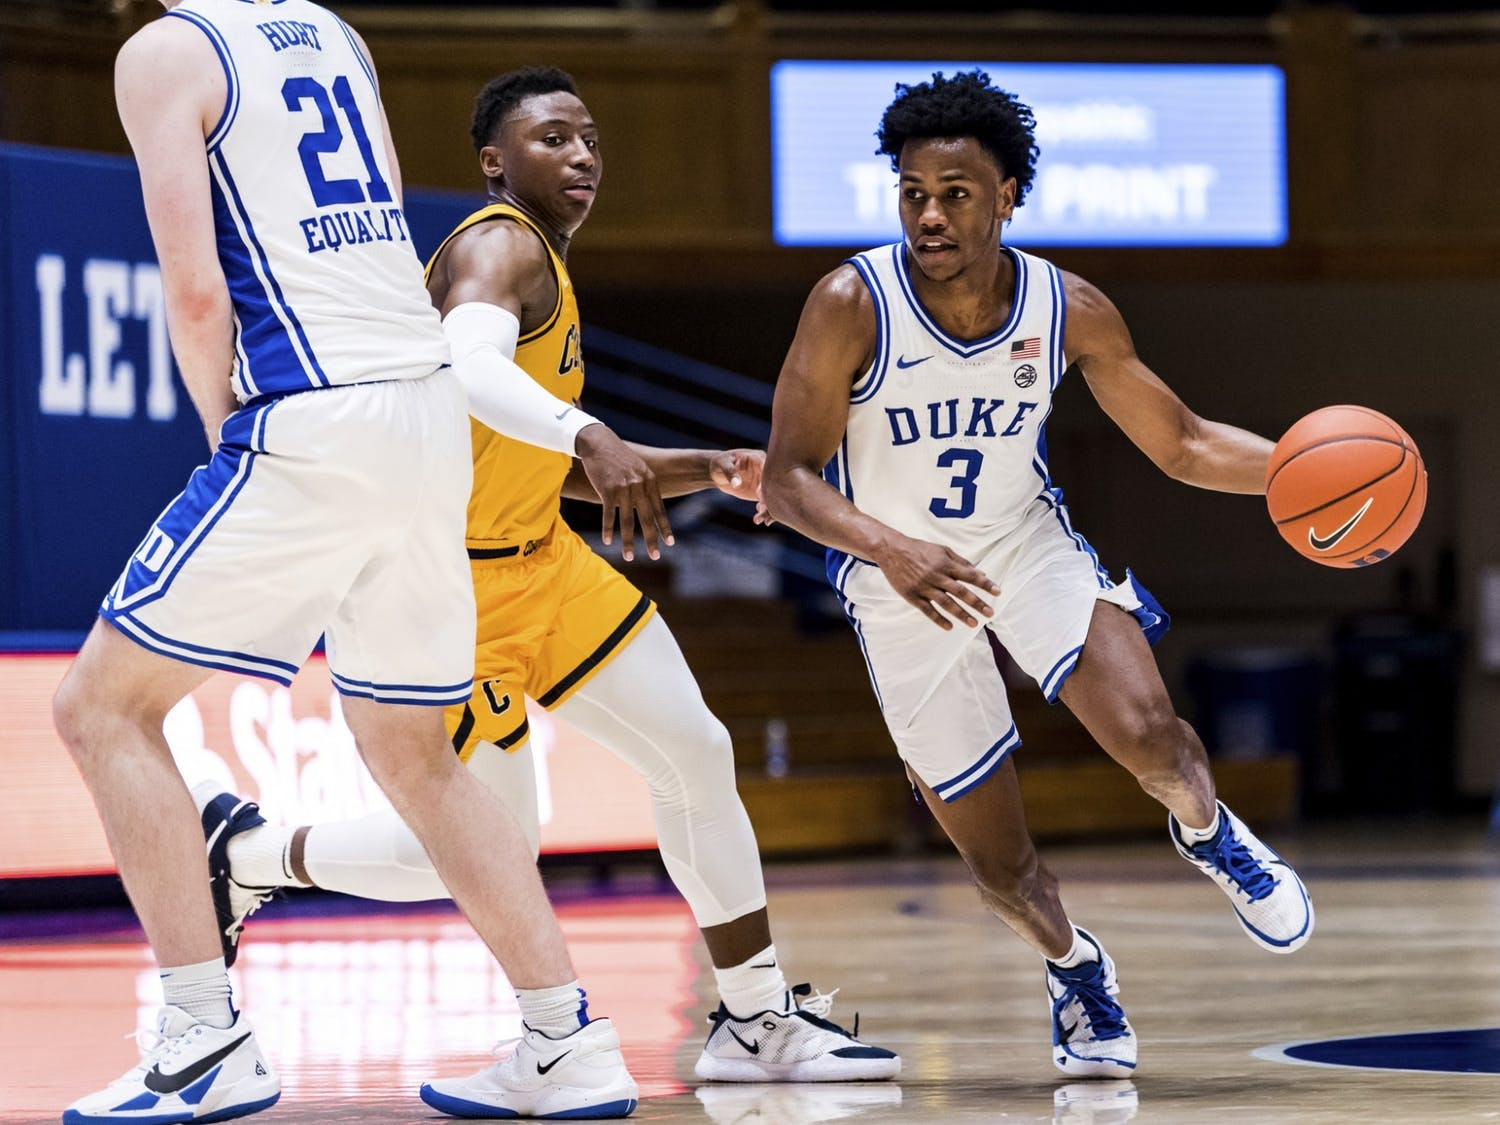 Jeremy Roach was one of the few Blue Devils to get anything going offensively in the first half Tuesday.